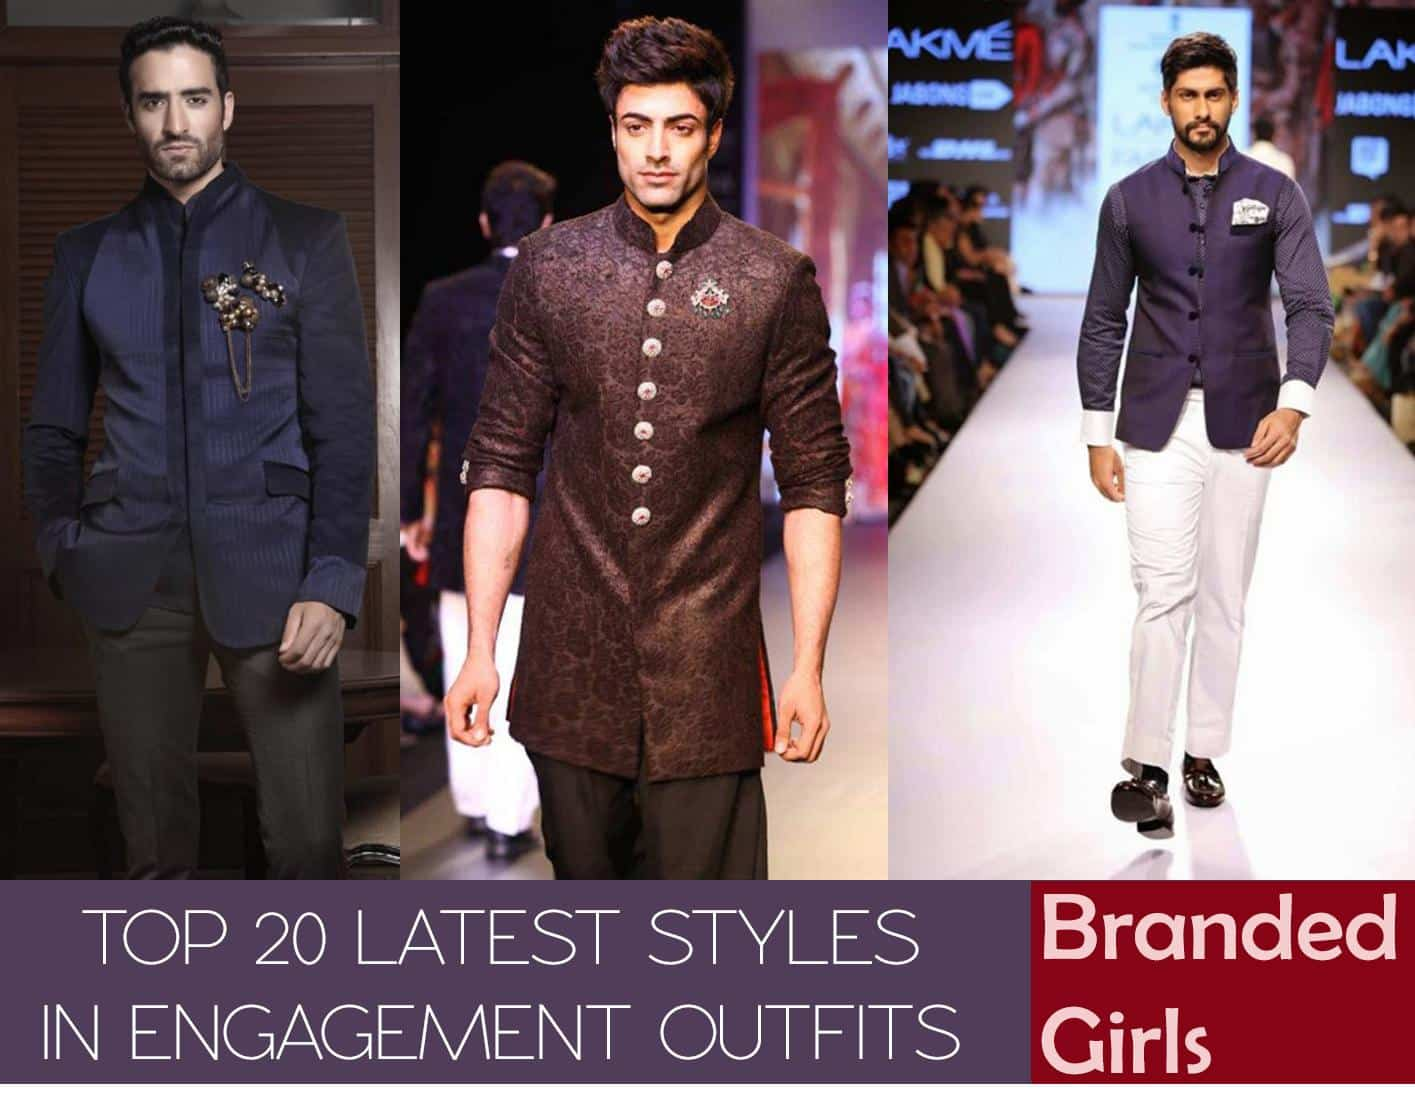 engagement-outfits-for-men Engagement Outfits for Indian Men-20 Latest Ideas what to Wear on Engagement